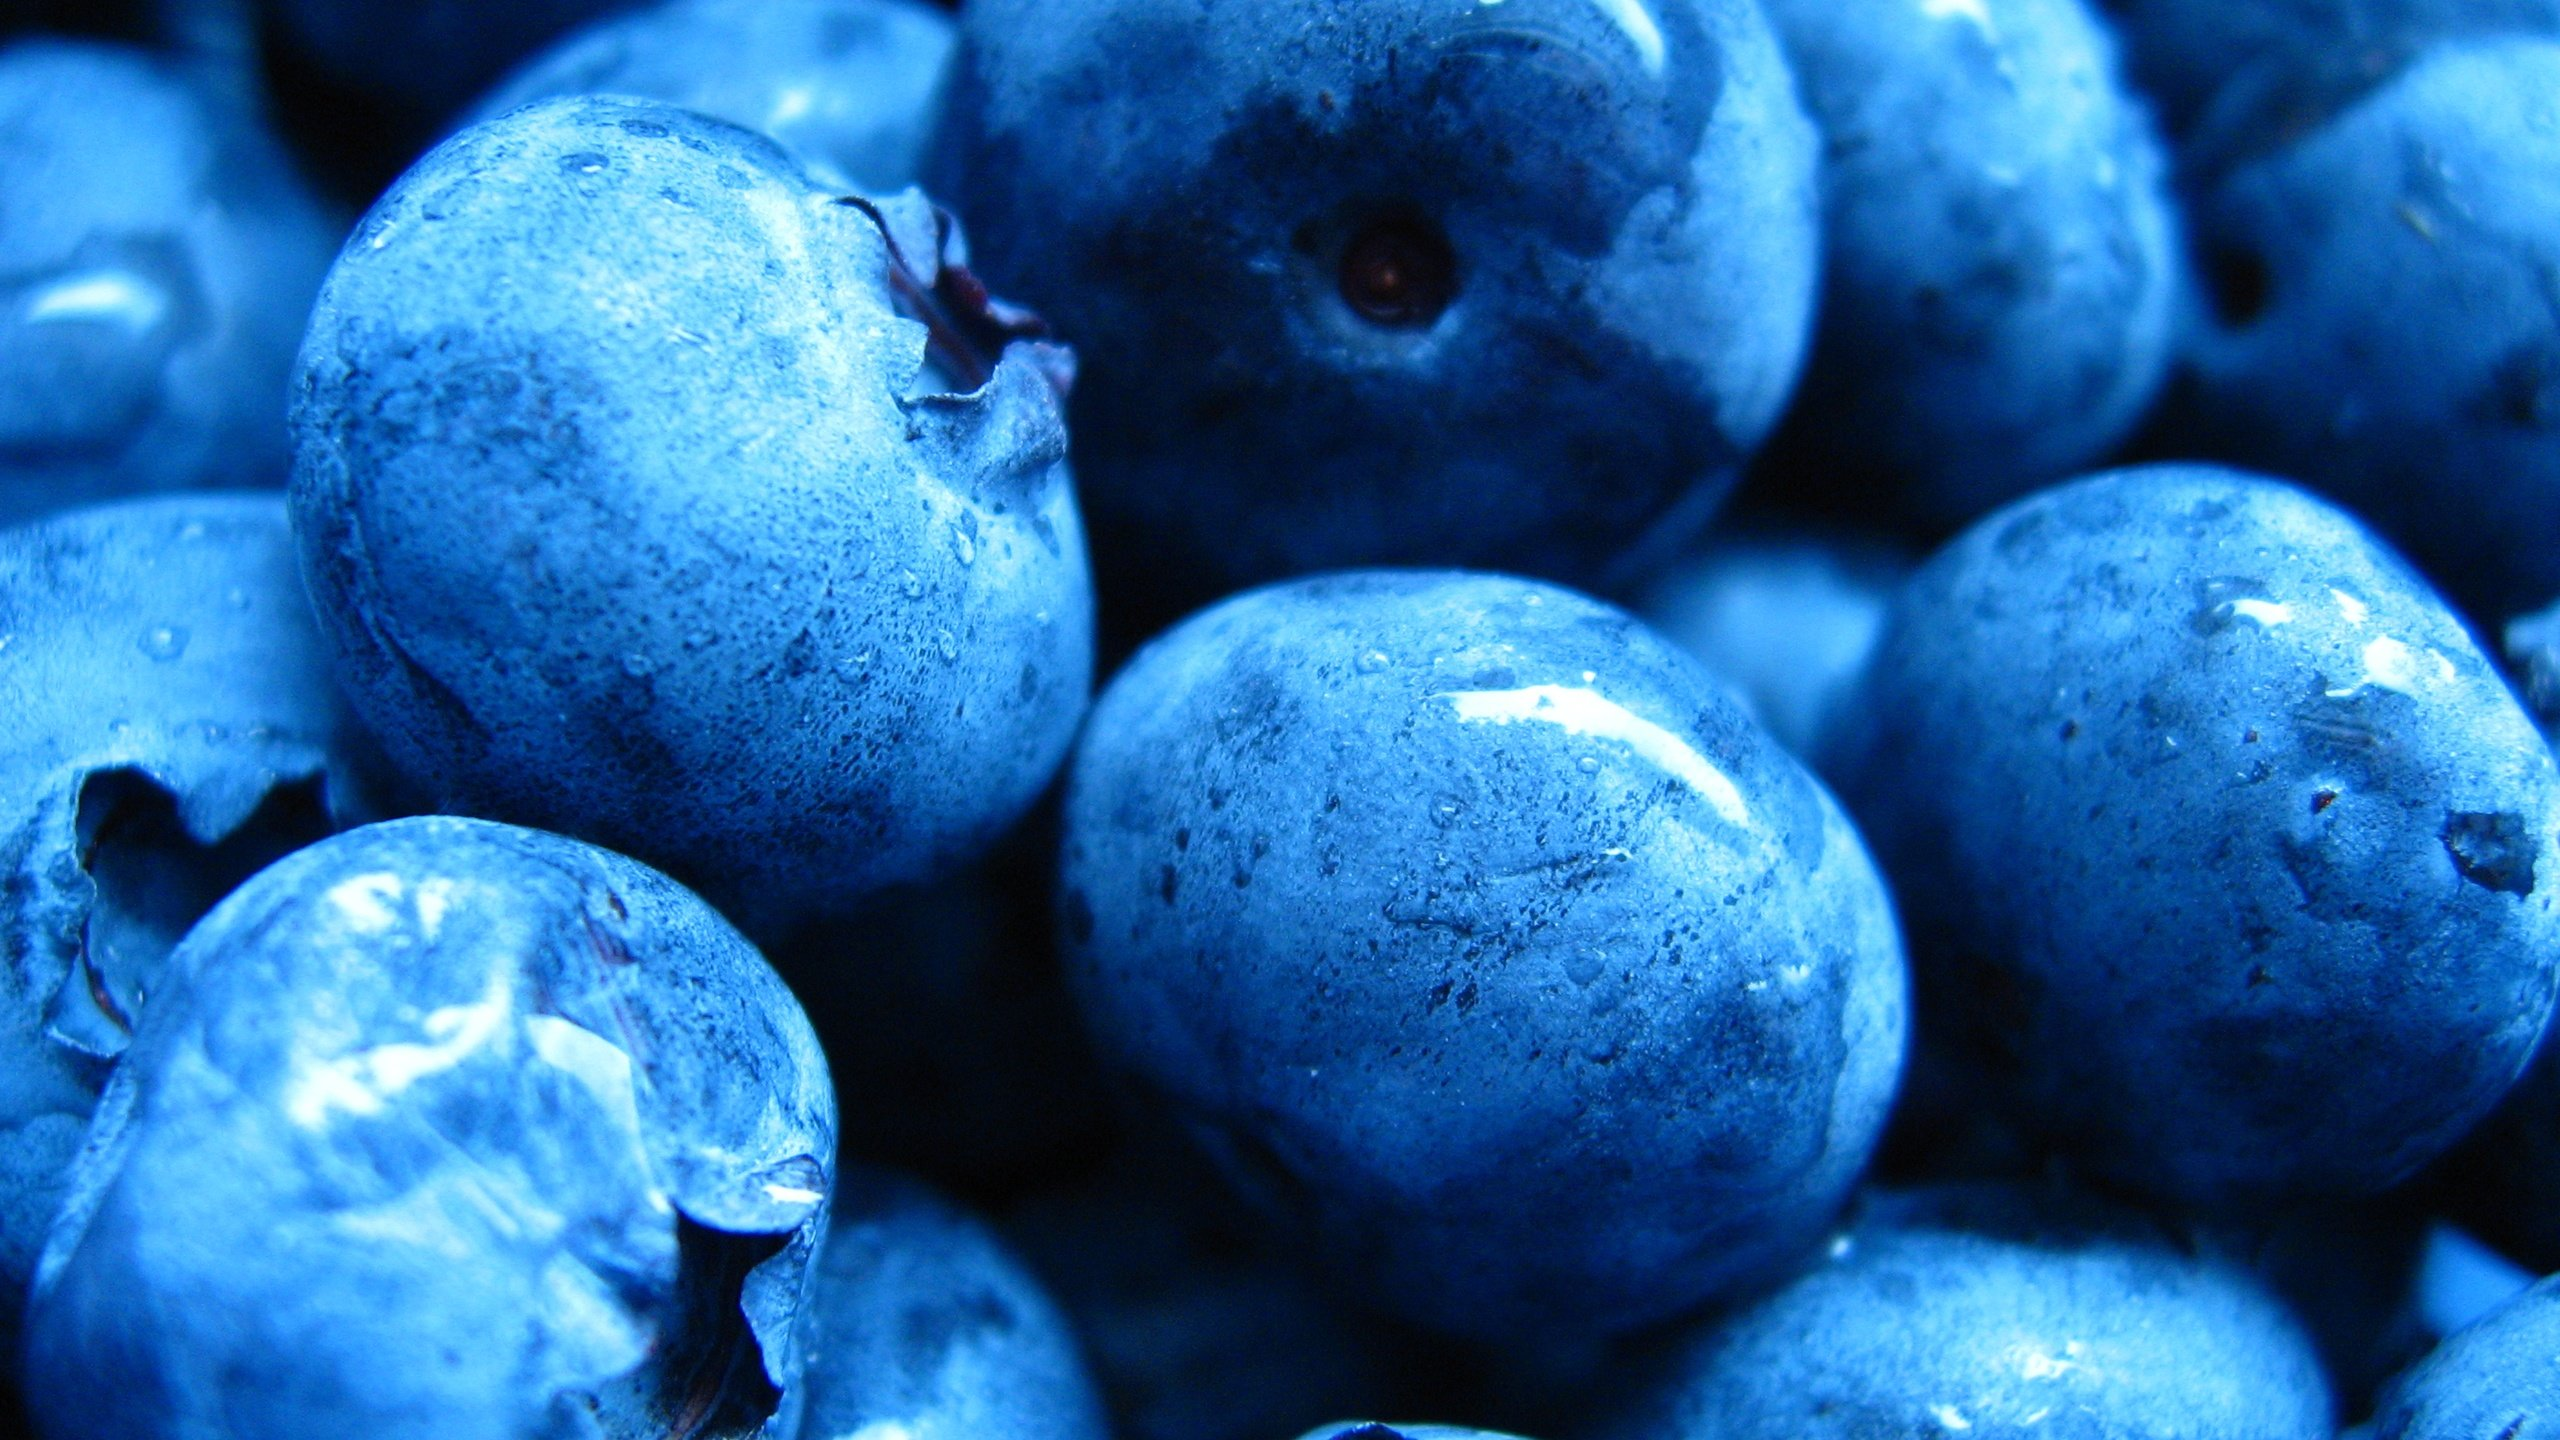 Free Blueberry high quality wallpaper ID:68991 for hd 2560x1440 desktop